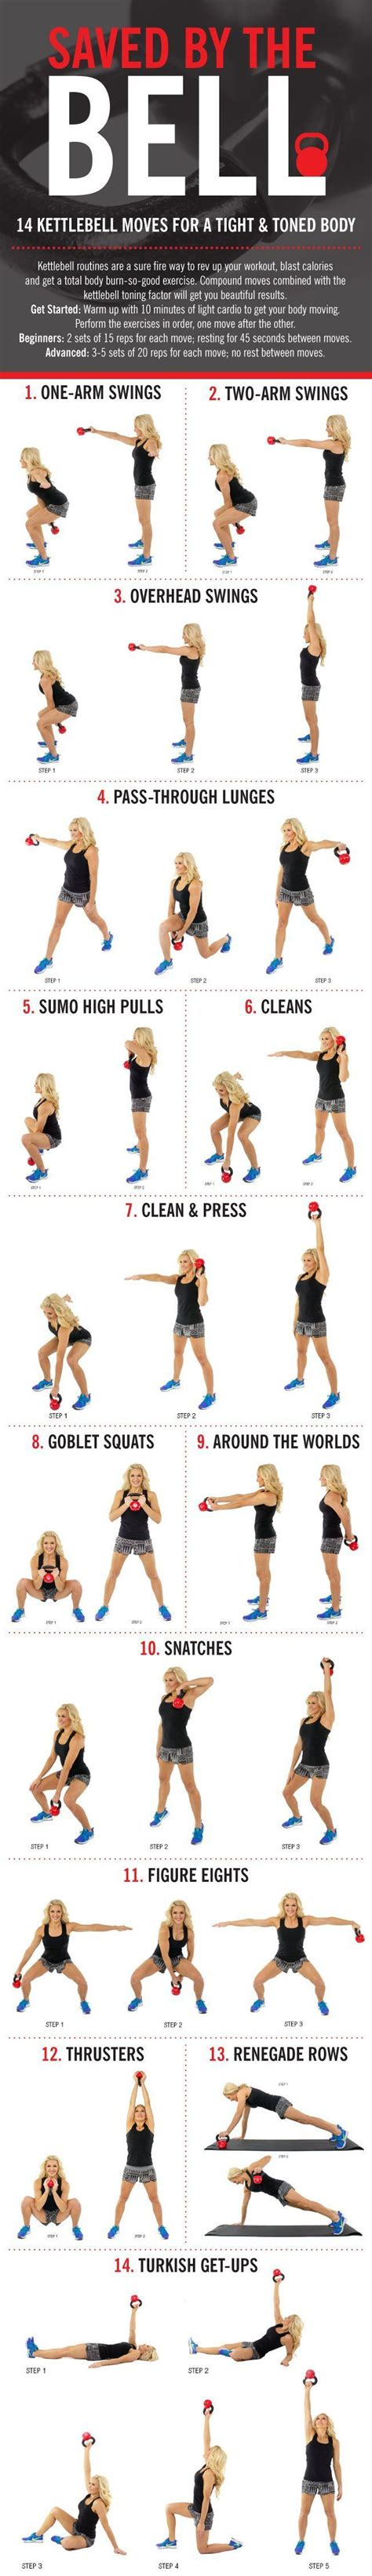 kettlebell body moves workout fitness exercise workouts ball skinnymom calorie torcher cardio diet